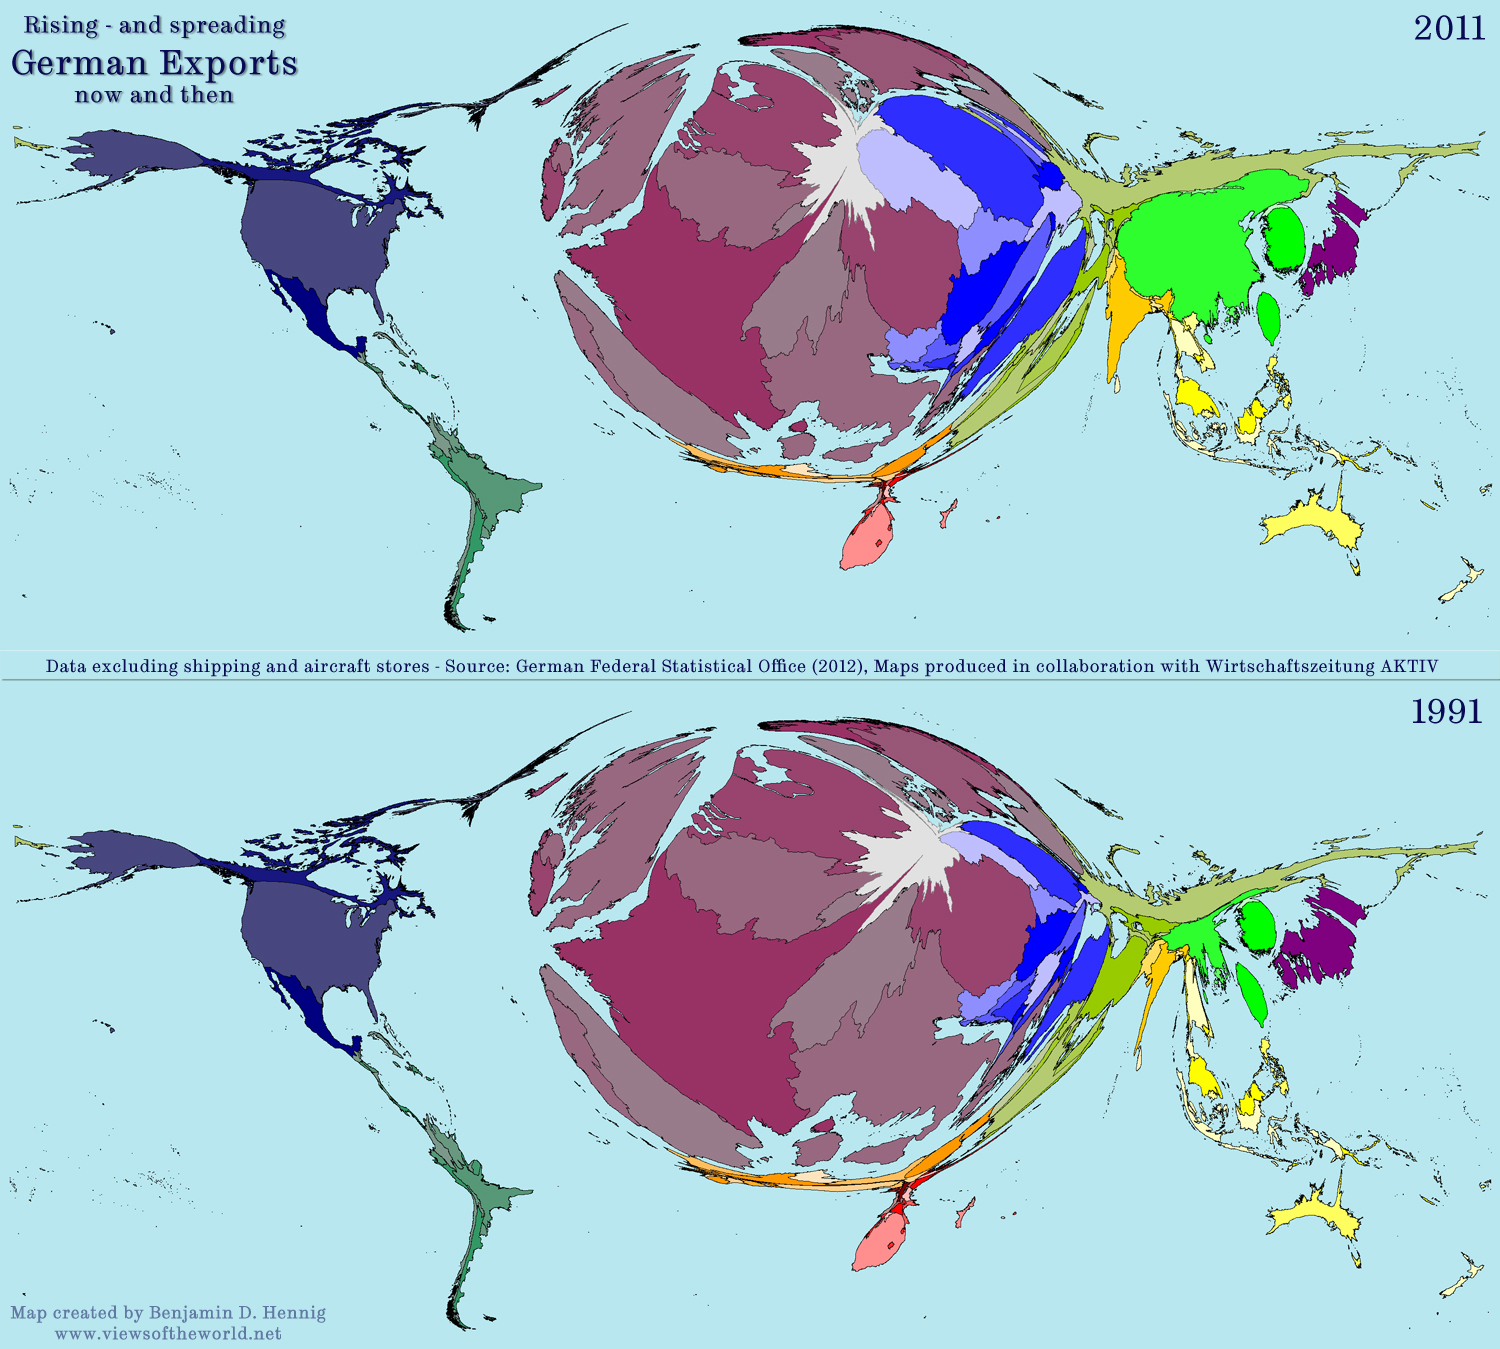 cartogram map of german exports in 1991 and 2011